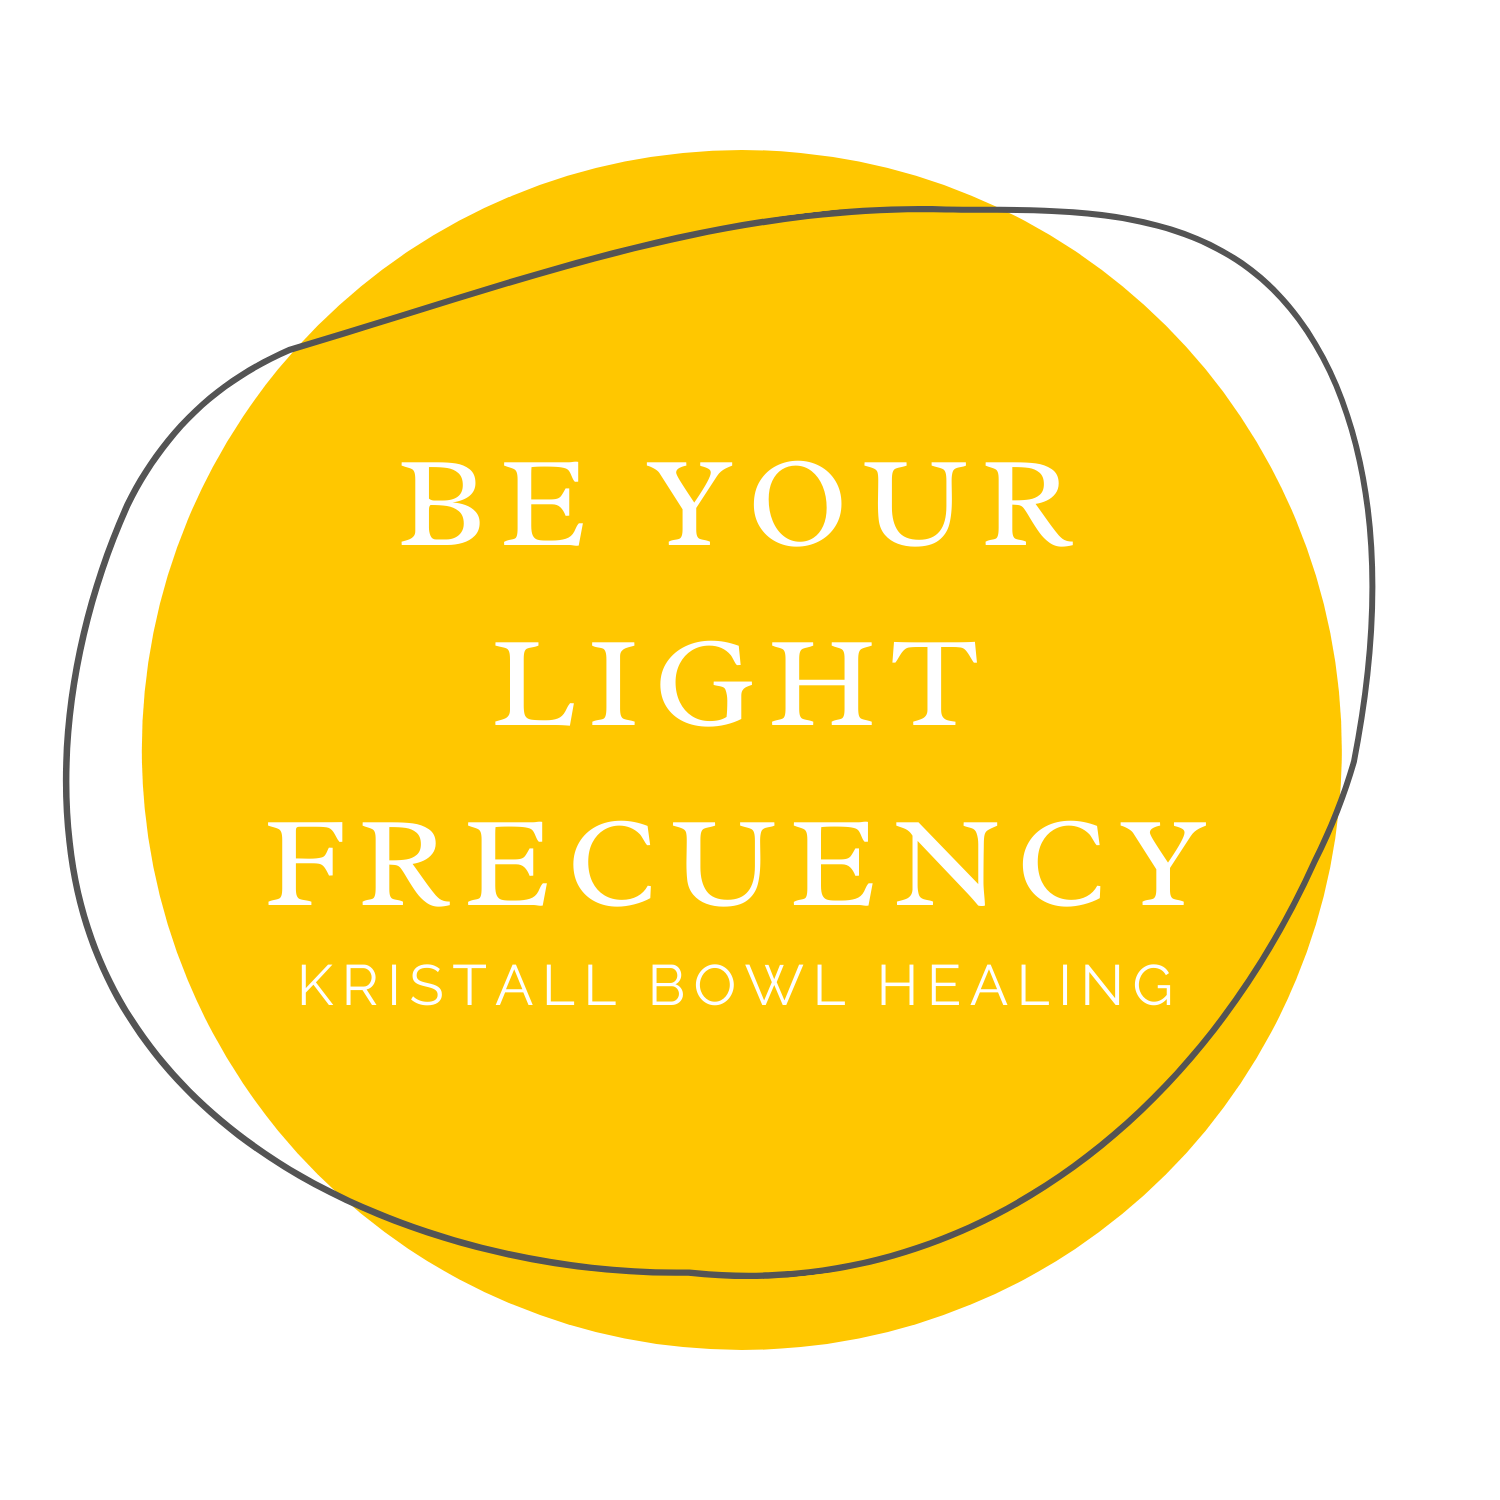 Be Your Light Frequency